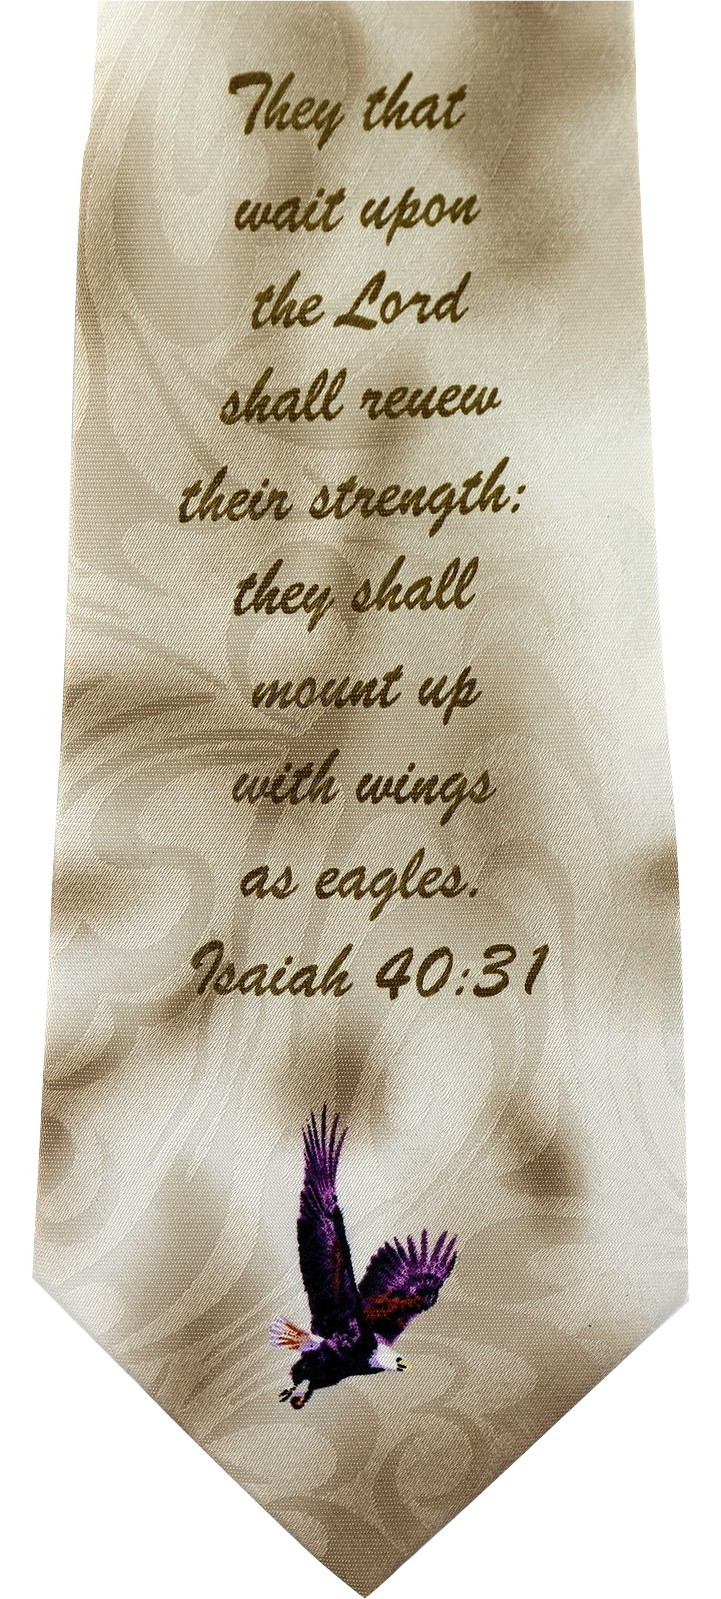 Wings As Eagles Mens Necktie Religious Scripture Isaiah 40:31 Christian Neck Tie image 2